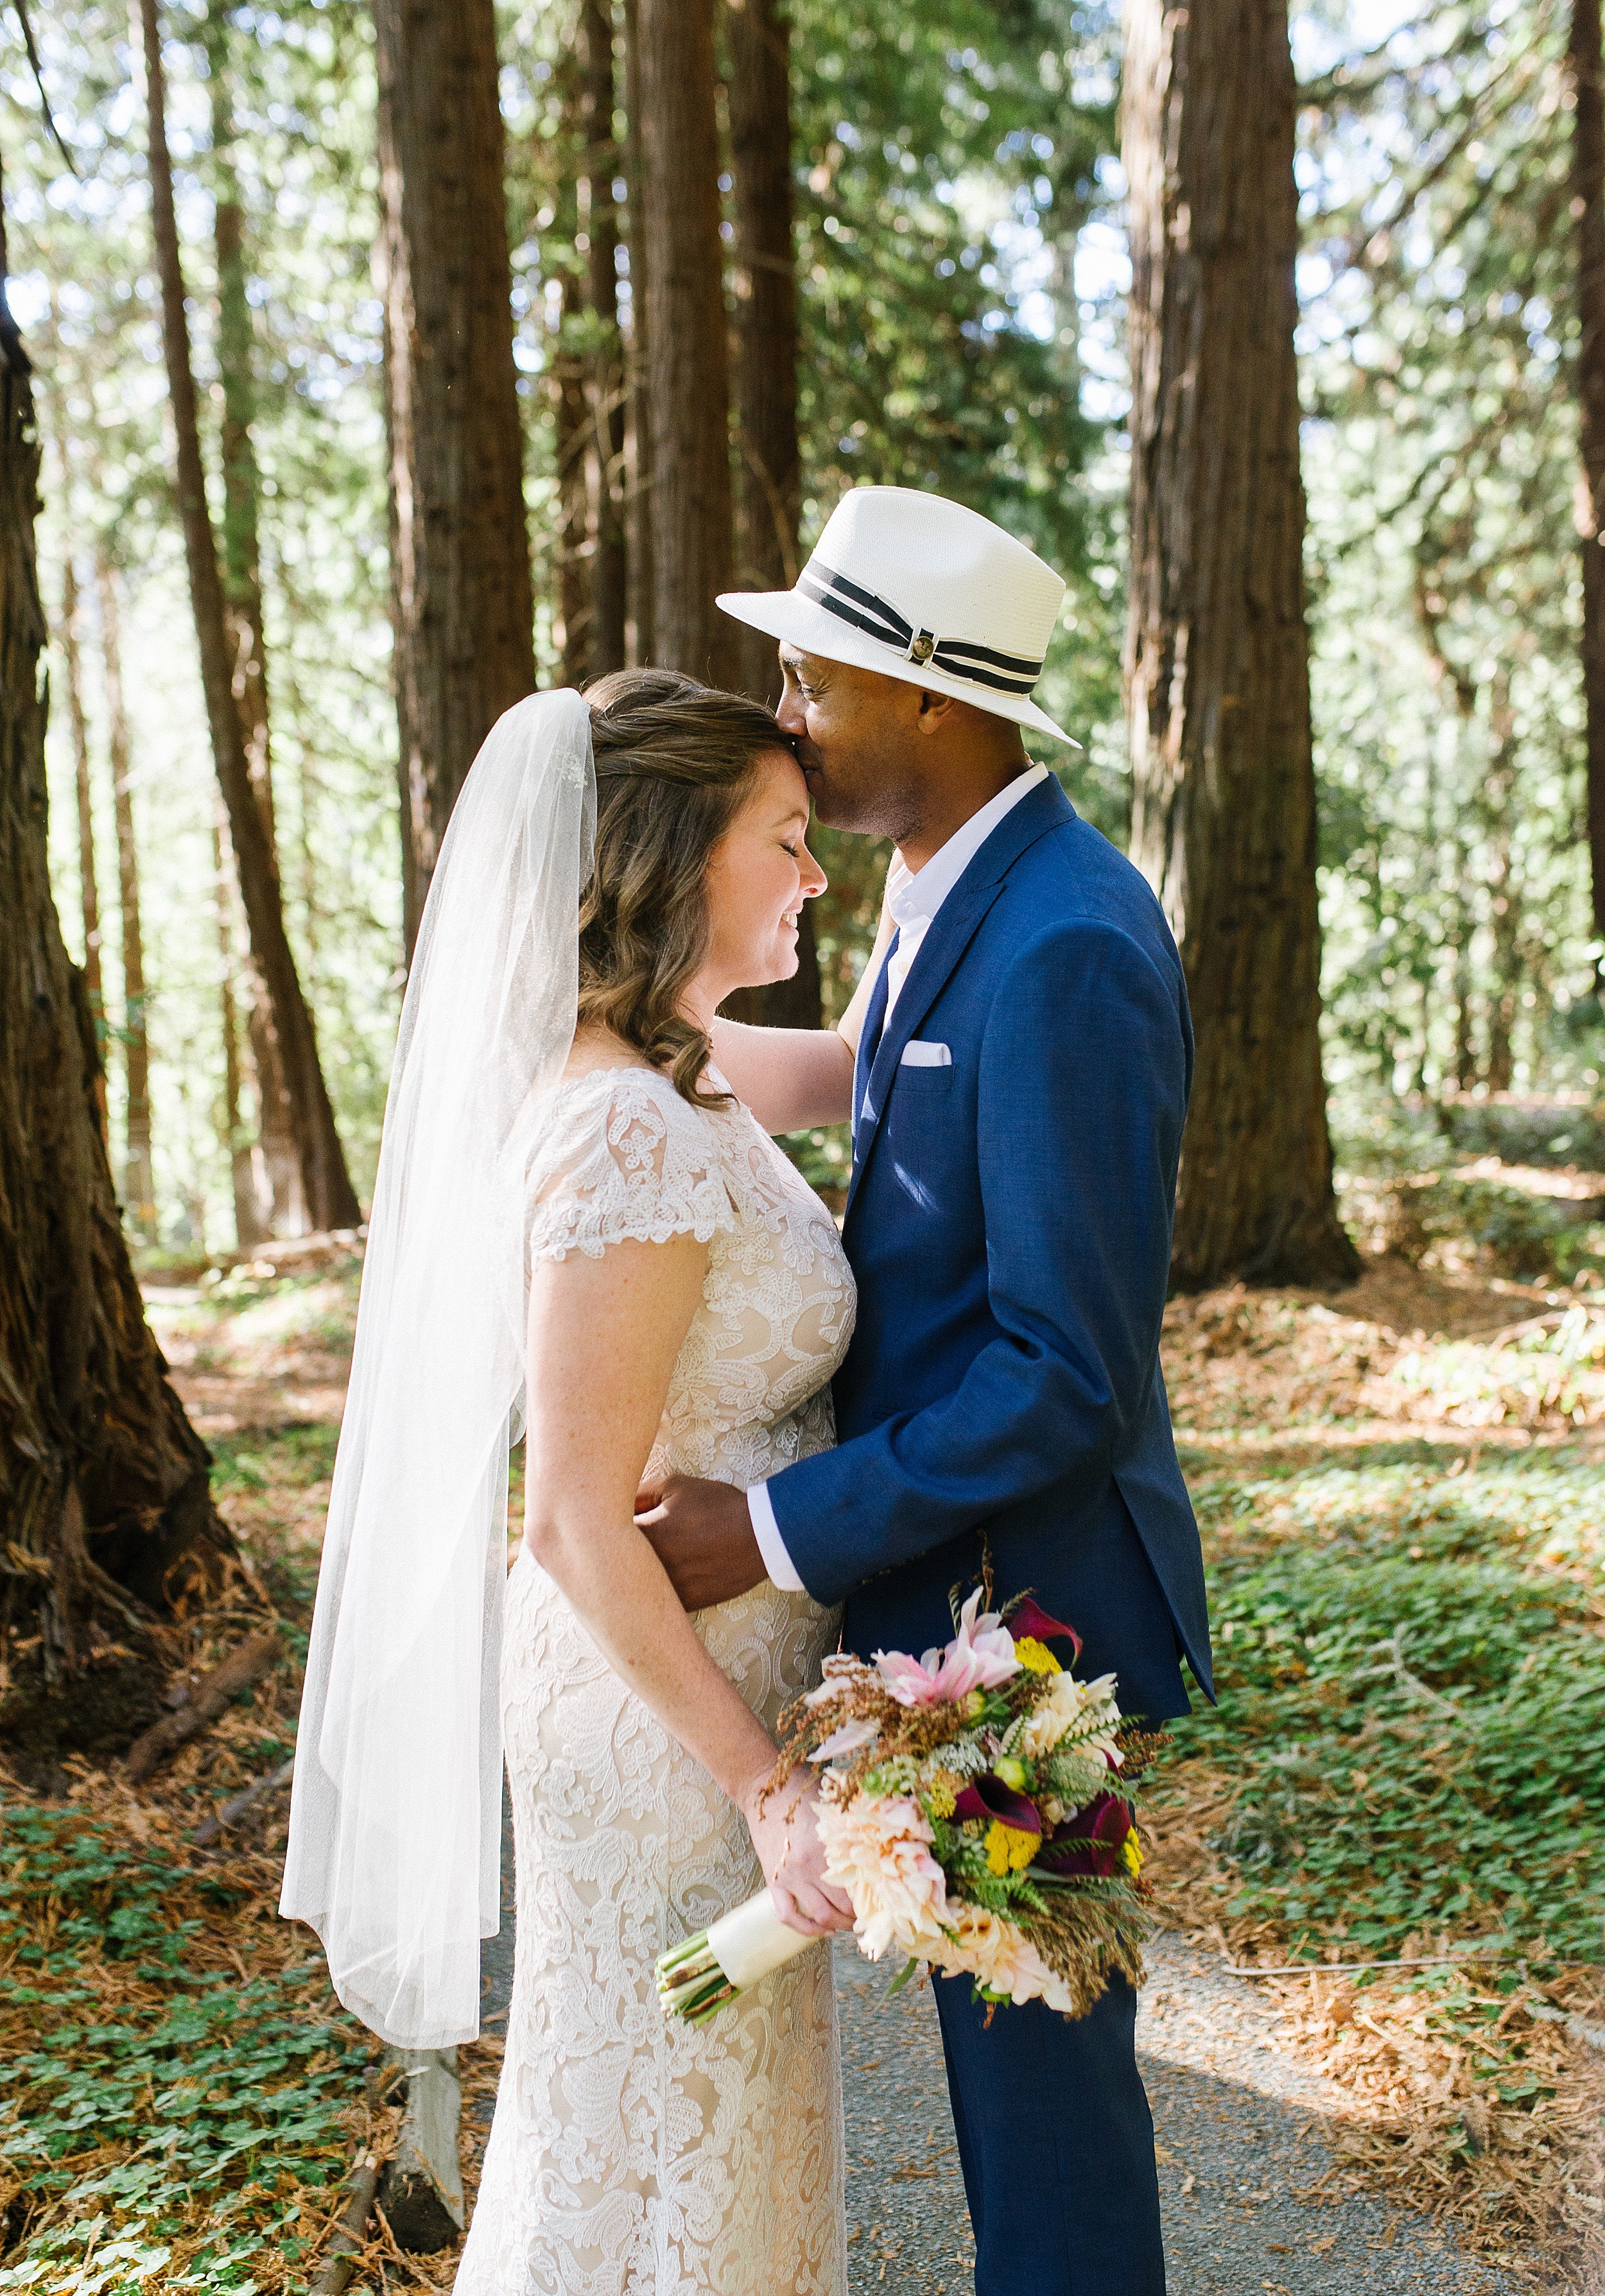 ucberkeley_botanical_redwoods_outdoor_wedding_jennyrez_cdp_0000.jpg